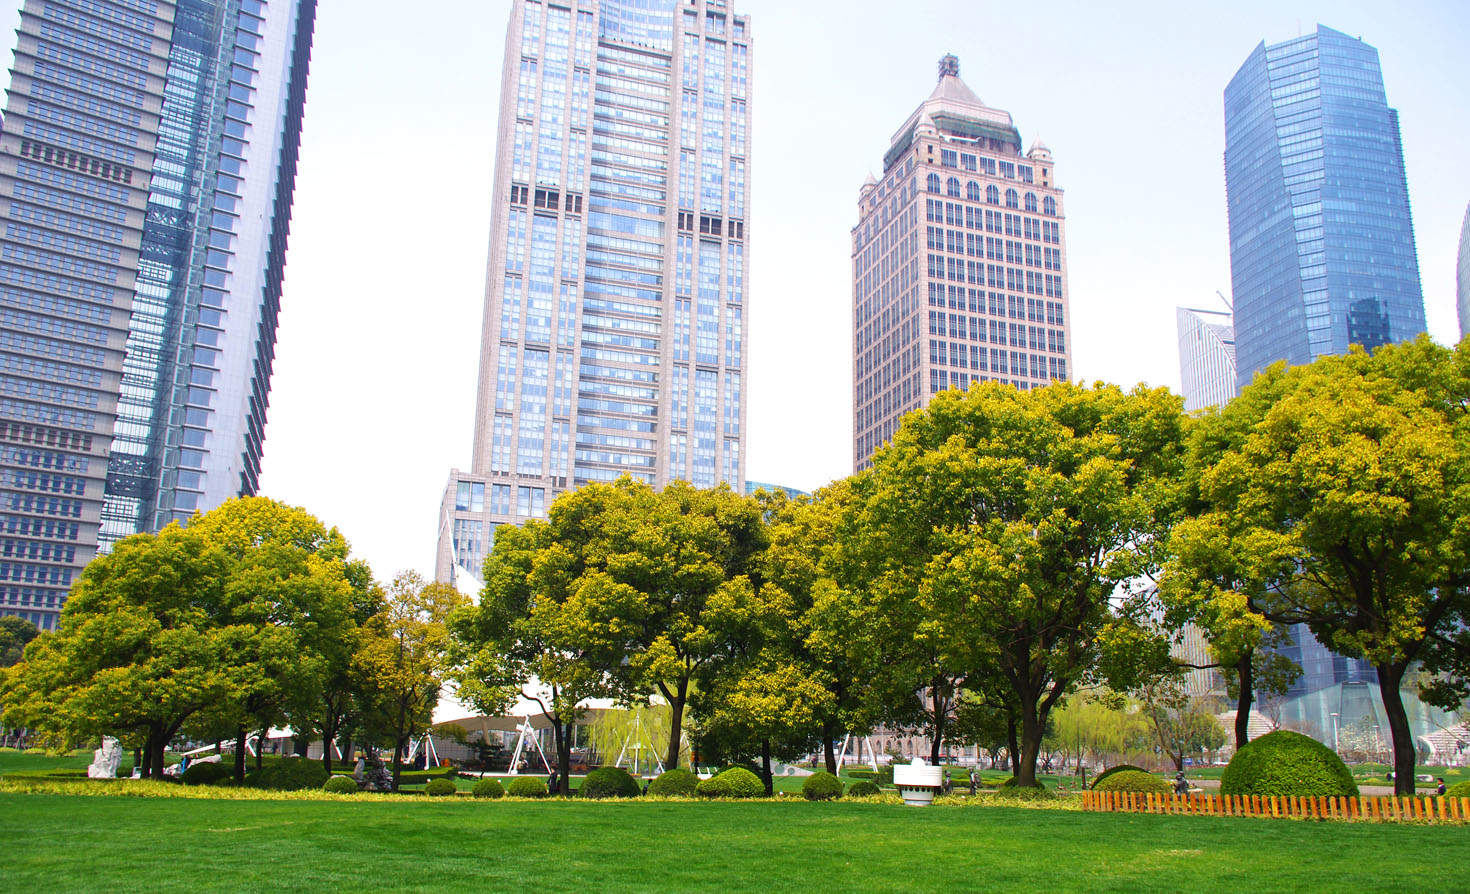 Cities and natural capital